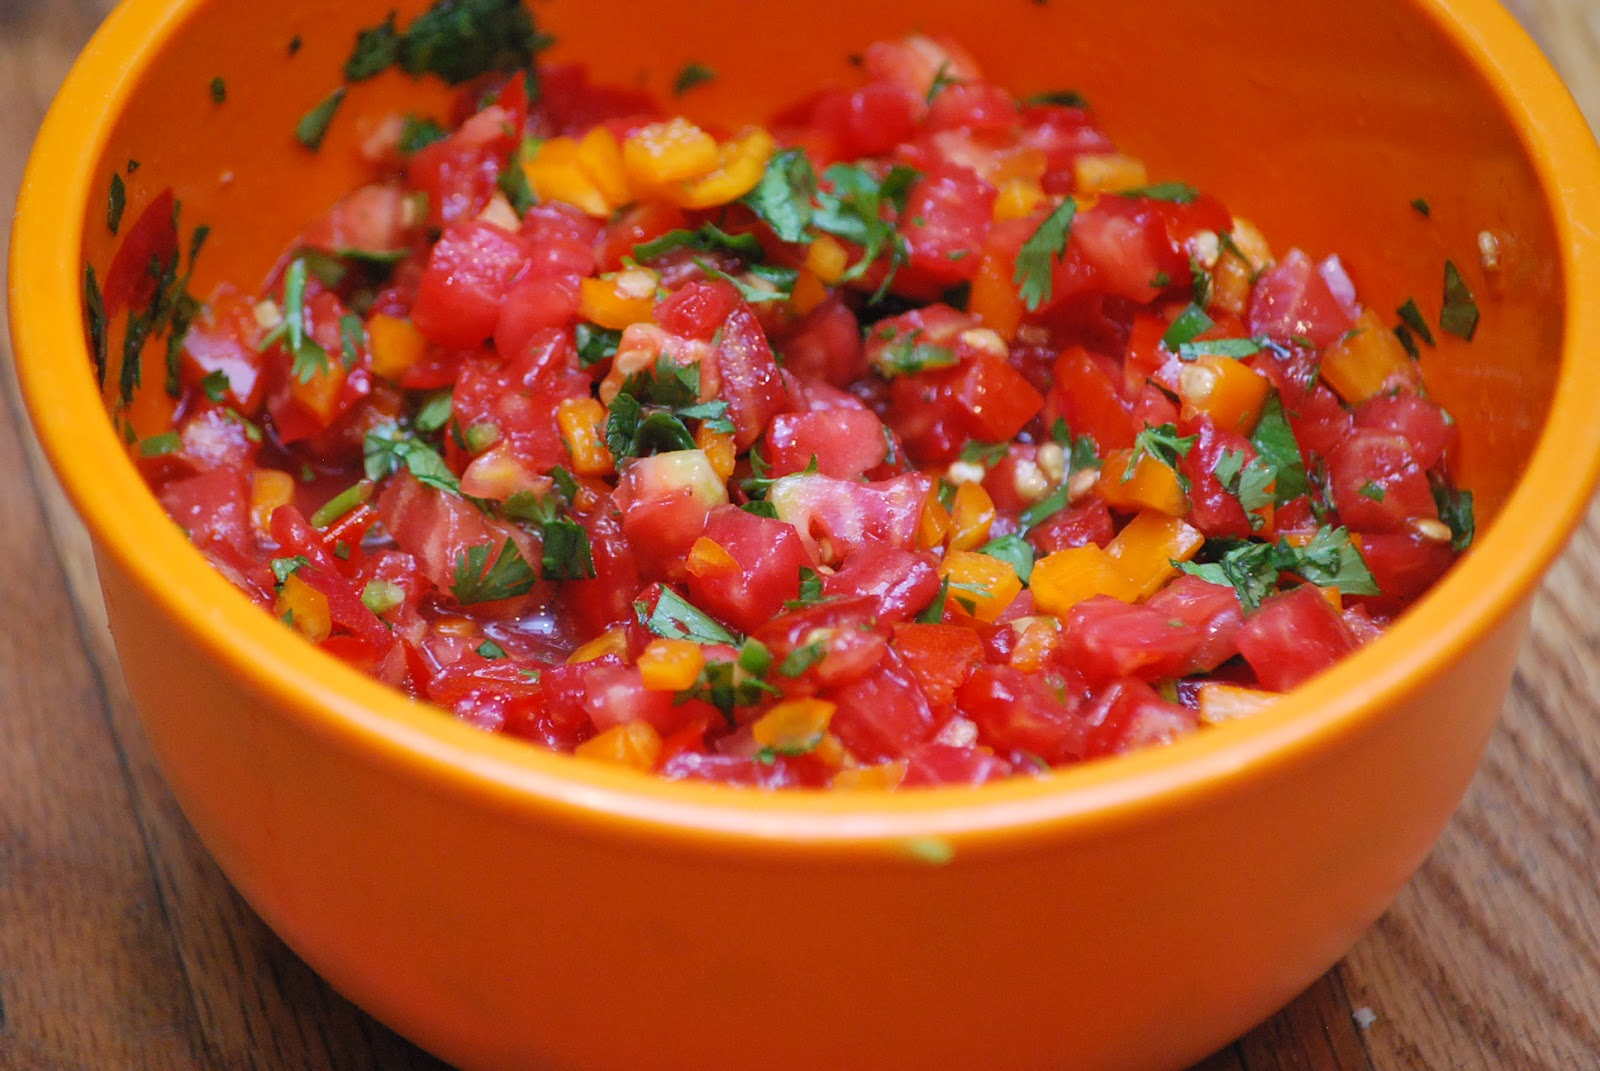 My story in recipes: Fresh Salsa